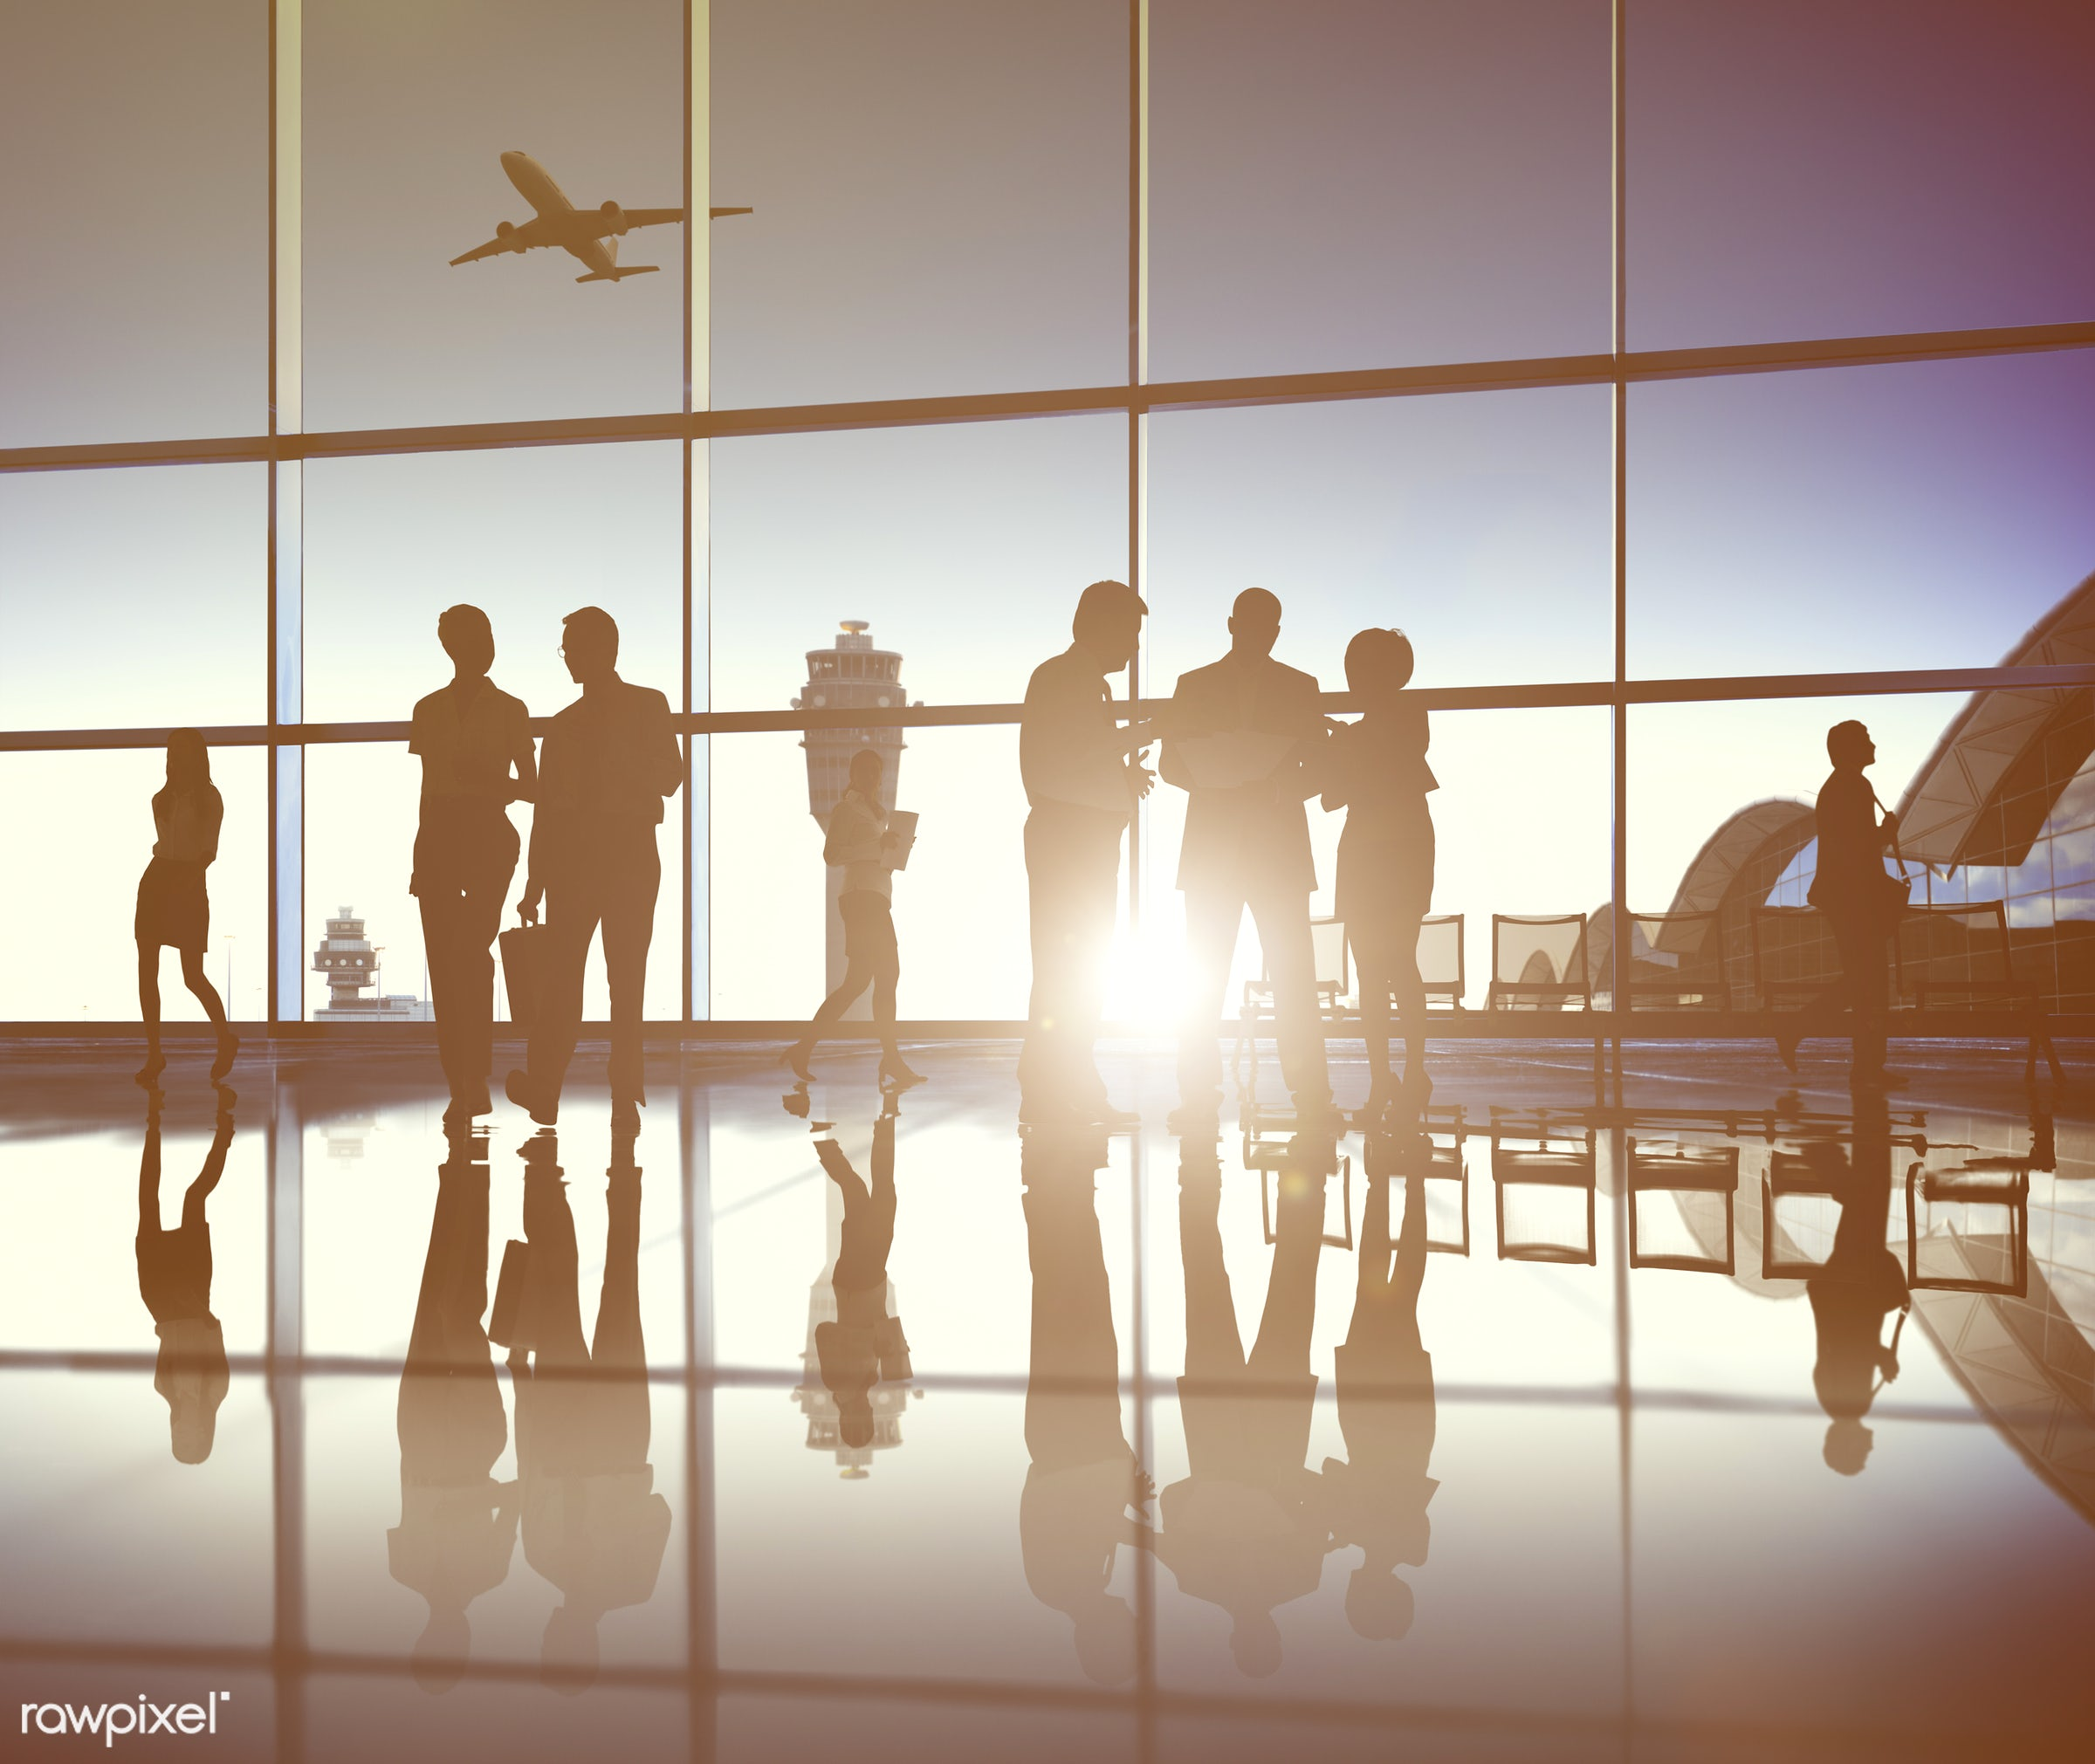 african descent, air transportation, airplane, airport, asian ethnicity, board room, brainstorming, building, business,...